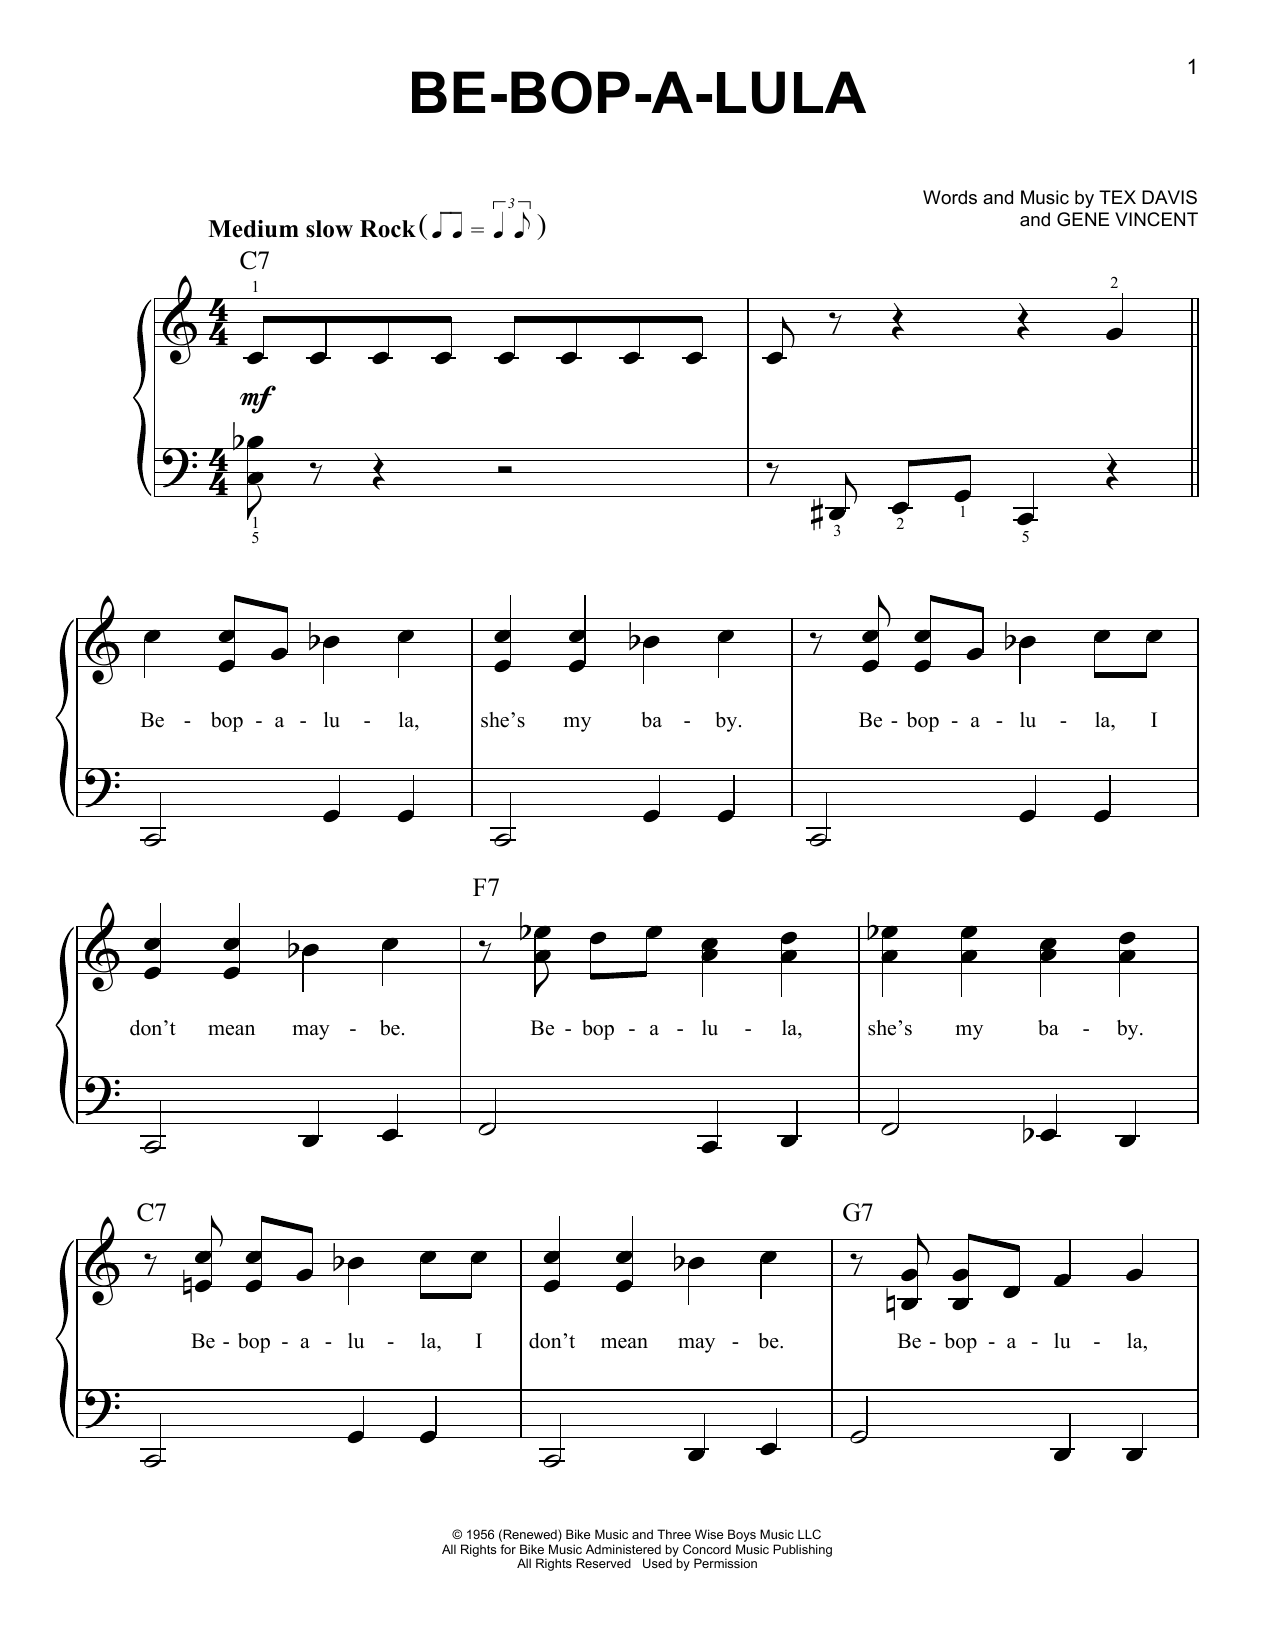 Gene Vincent Be-Bop-A-Lula sheet music notes and chords. Download Printable PDF.